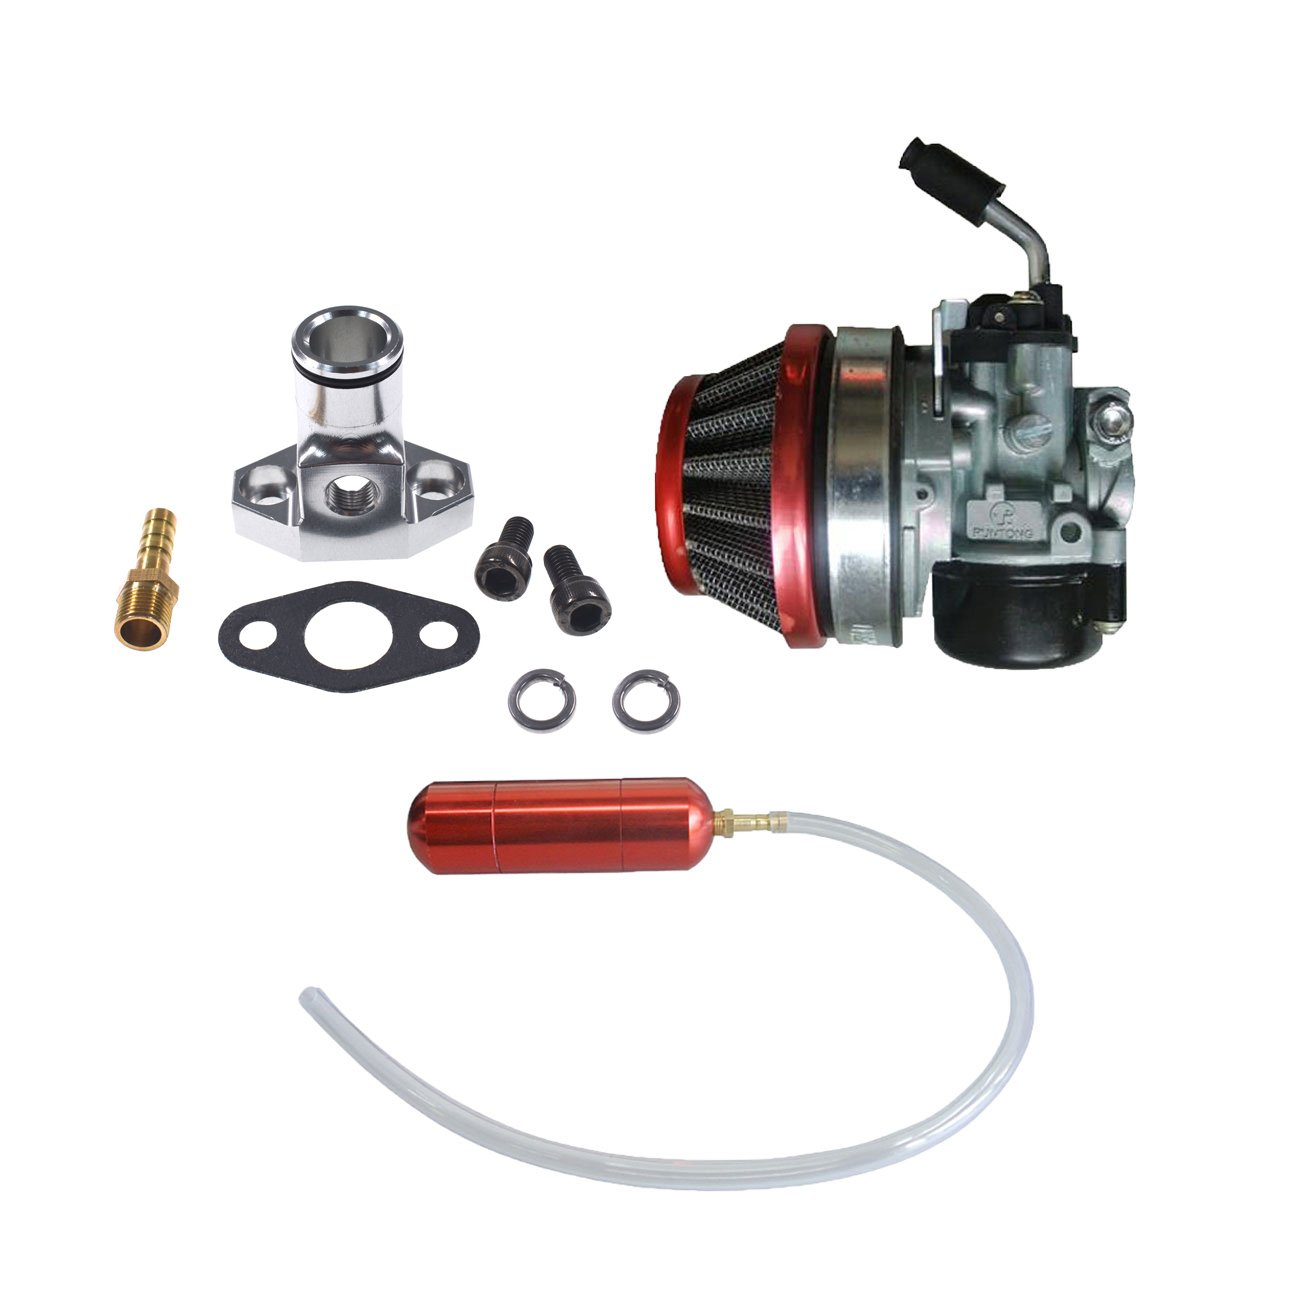 JRL Carburetor&Red Gas Power Boost Bottle For 66cc 80cc Engine Motorized Bicycle by JRL